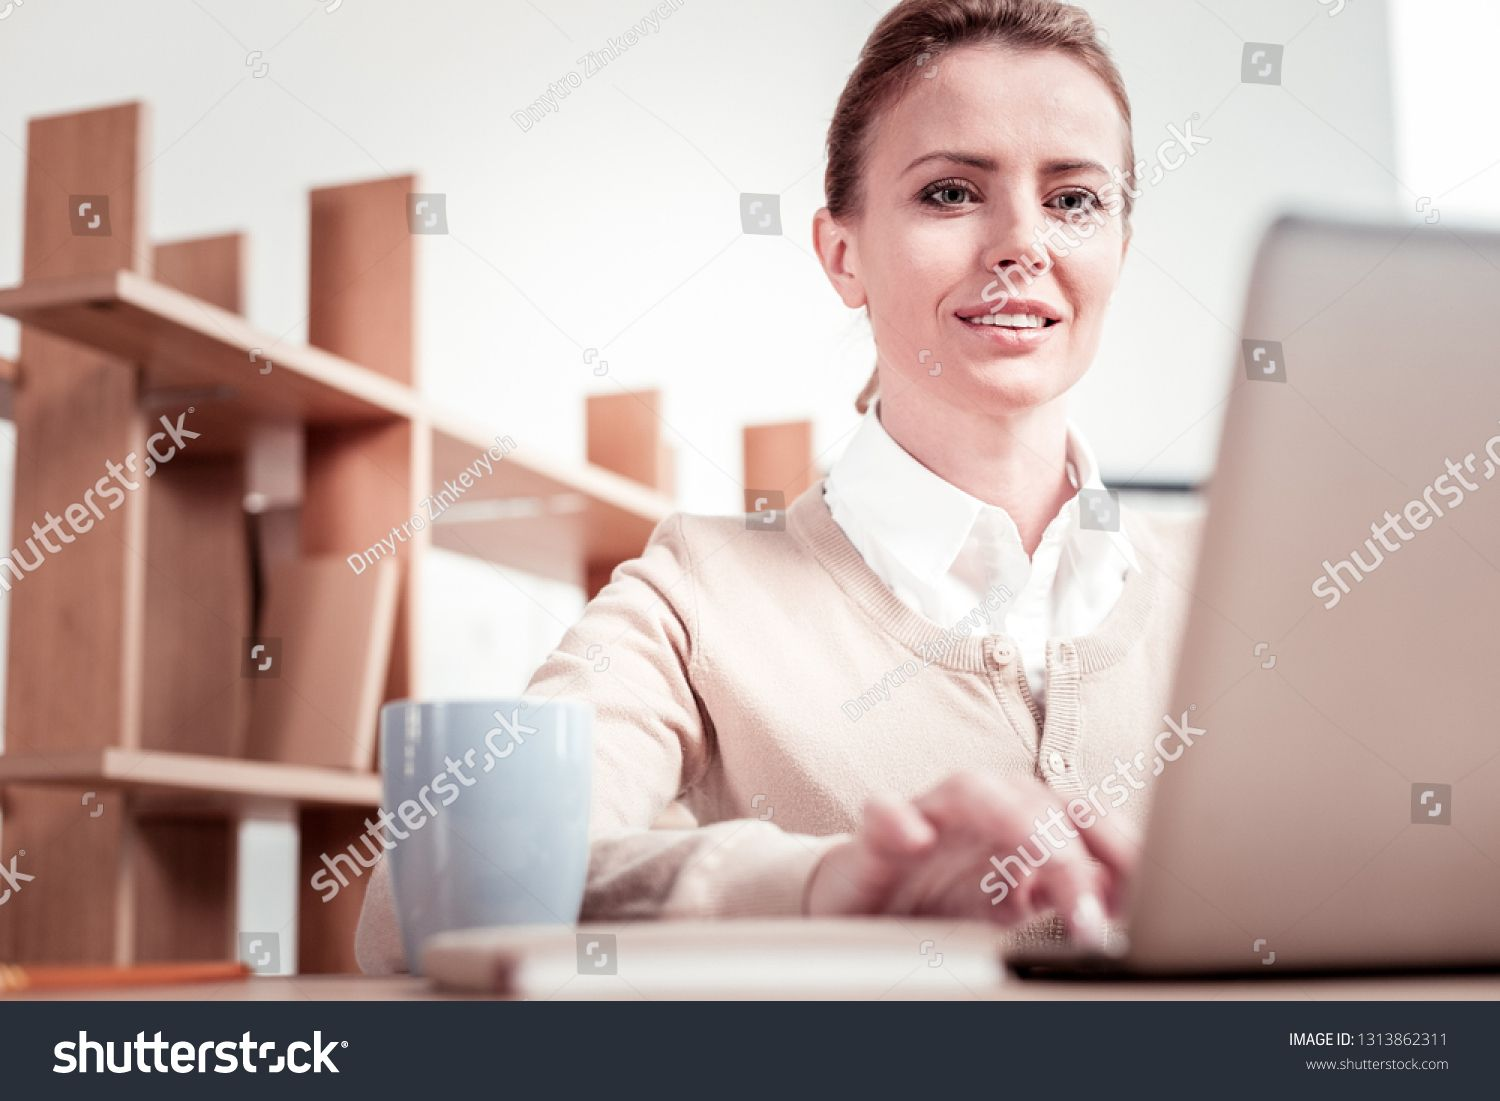 Skilled practitioner. Clever grey-eyed skilled practitioner feeling excited while being involved in new project creation sitting at work place #Ad , #Affiliate, #eyed#skilled#feeling#grey